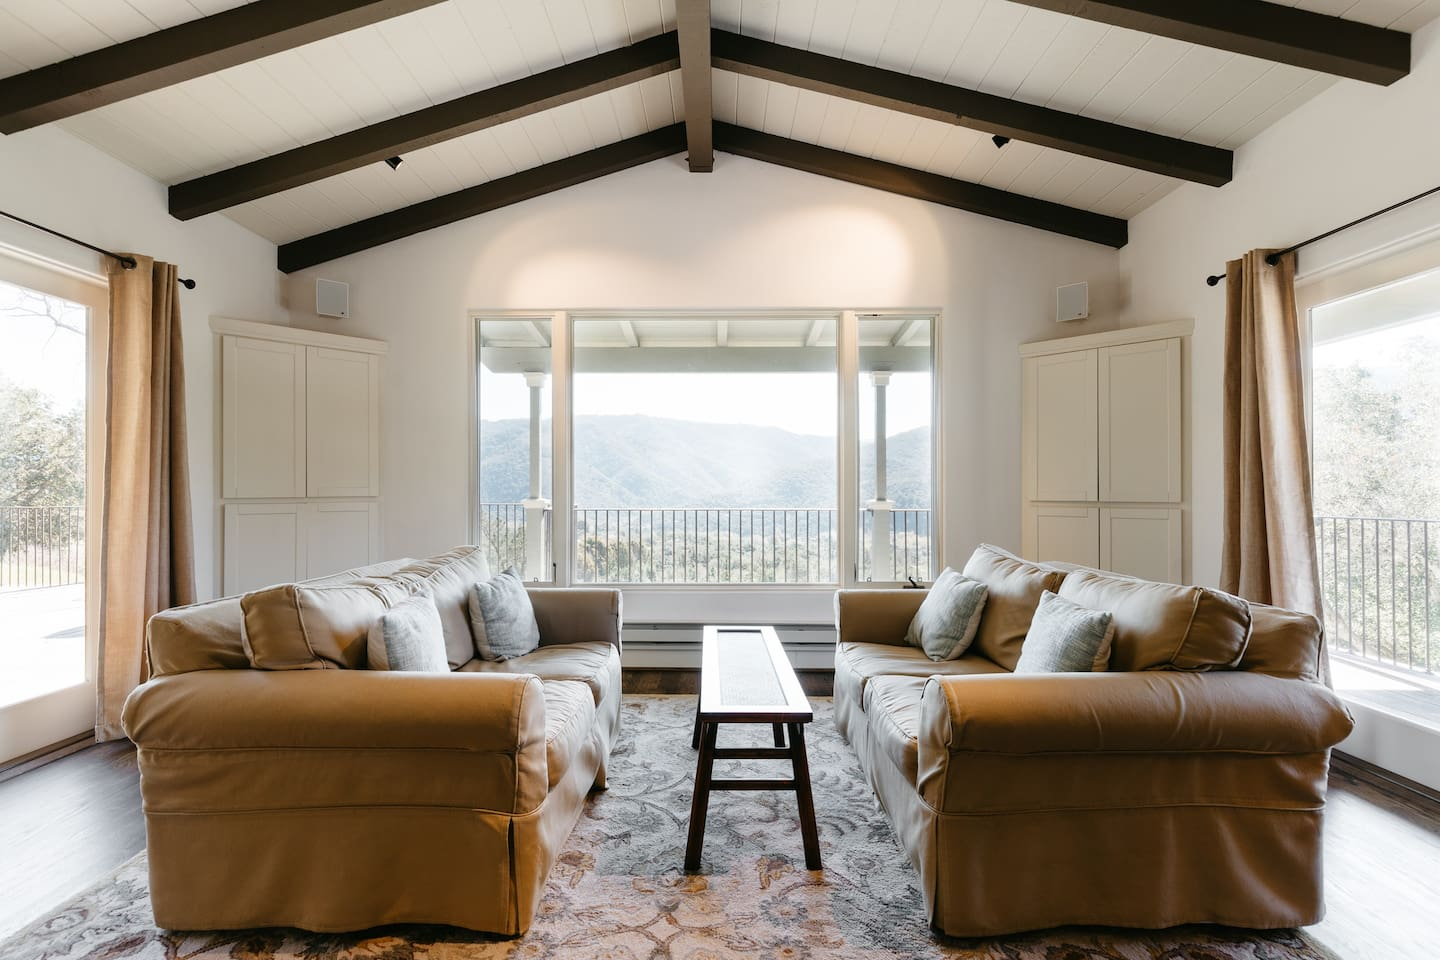 Living Room w/ Views of the Valley